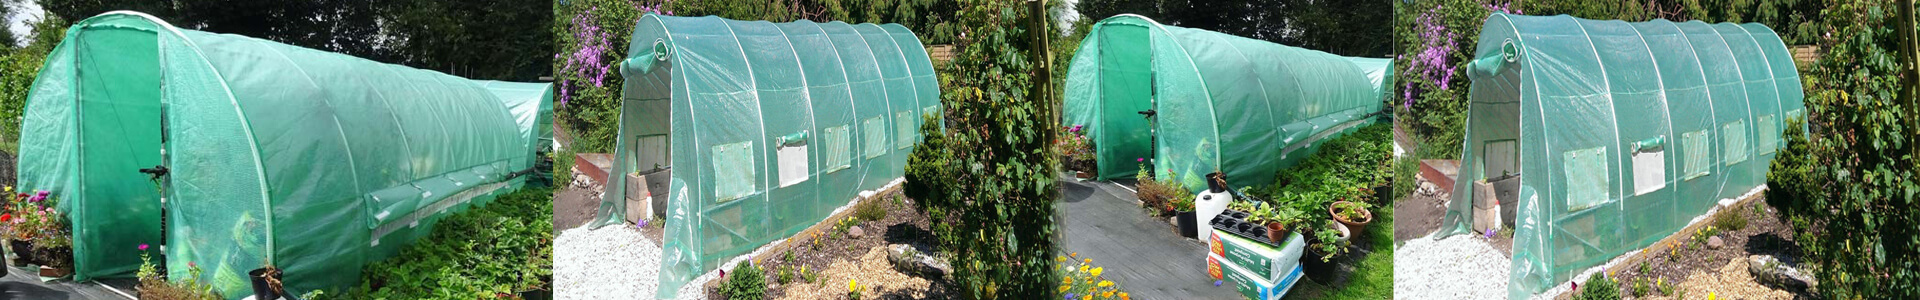 10FT X 7FT Polytunnel Pro With Door